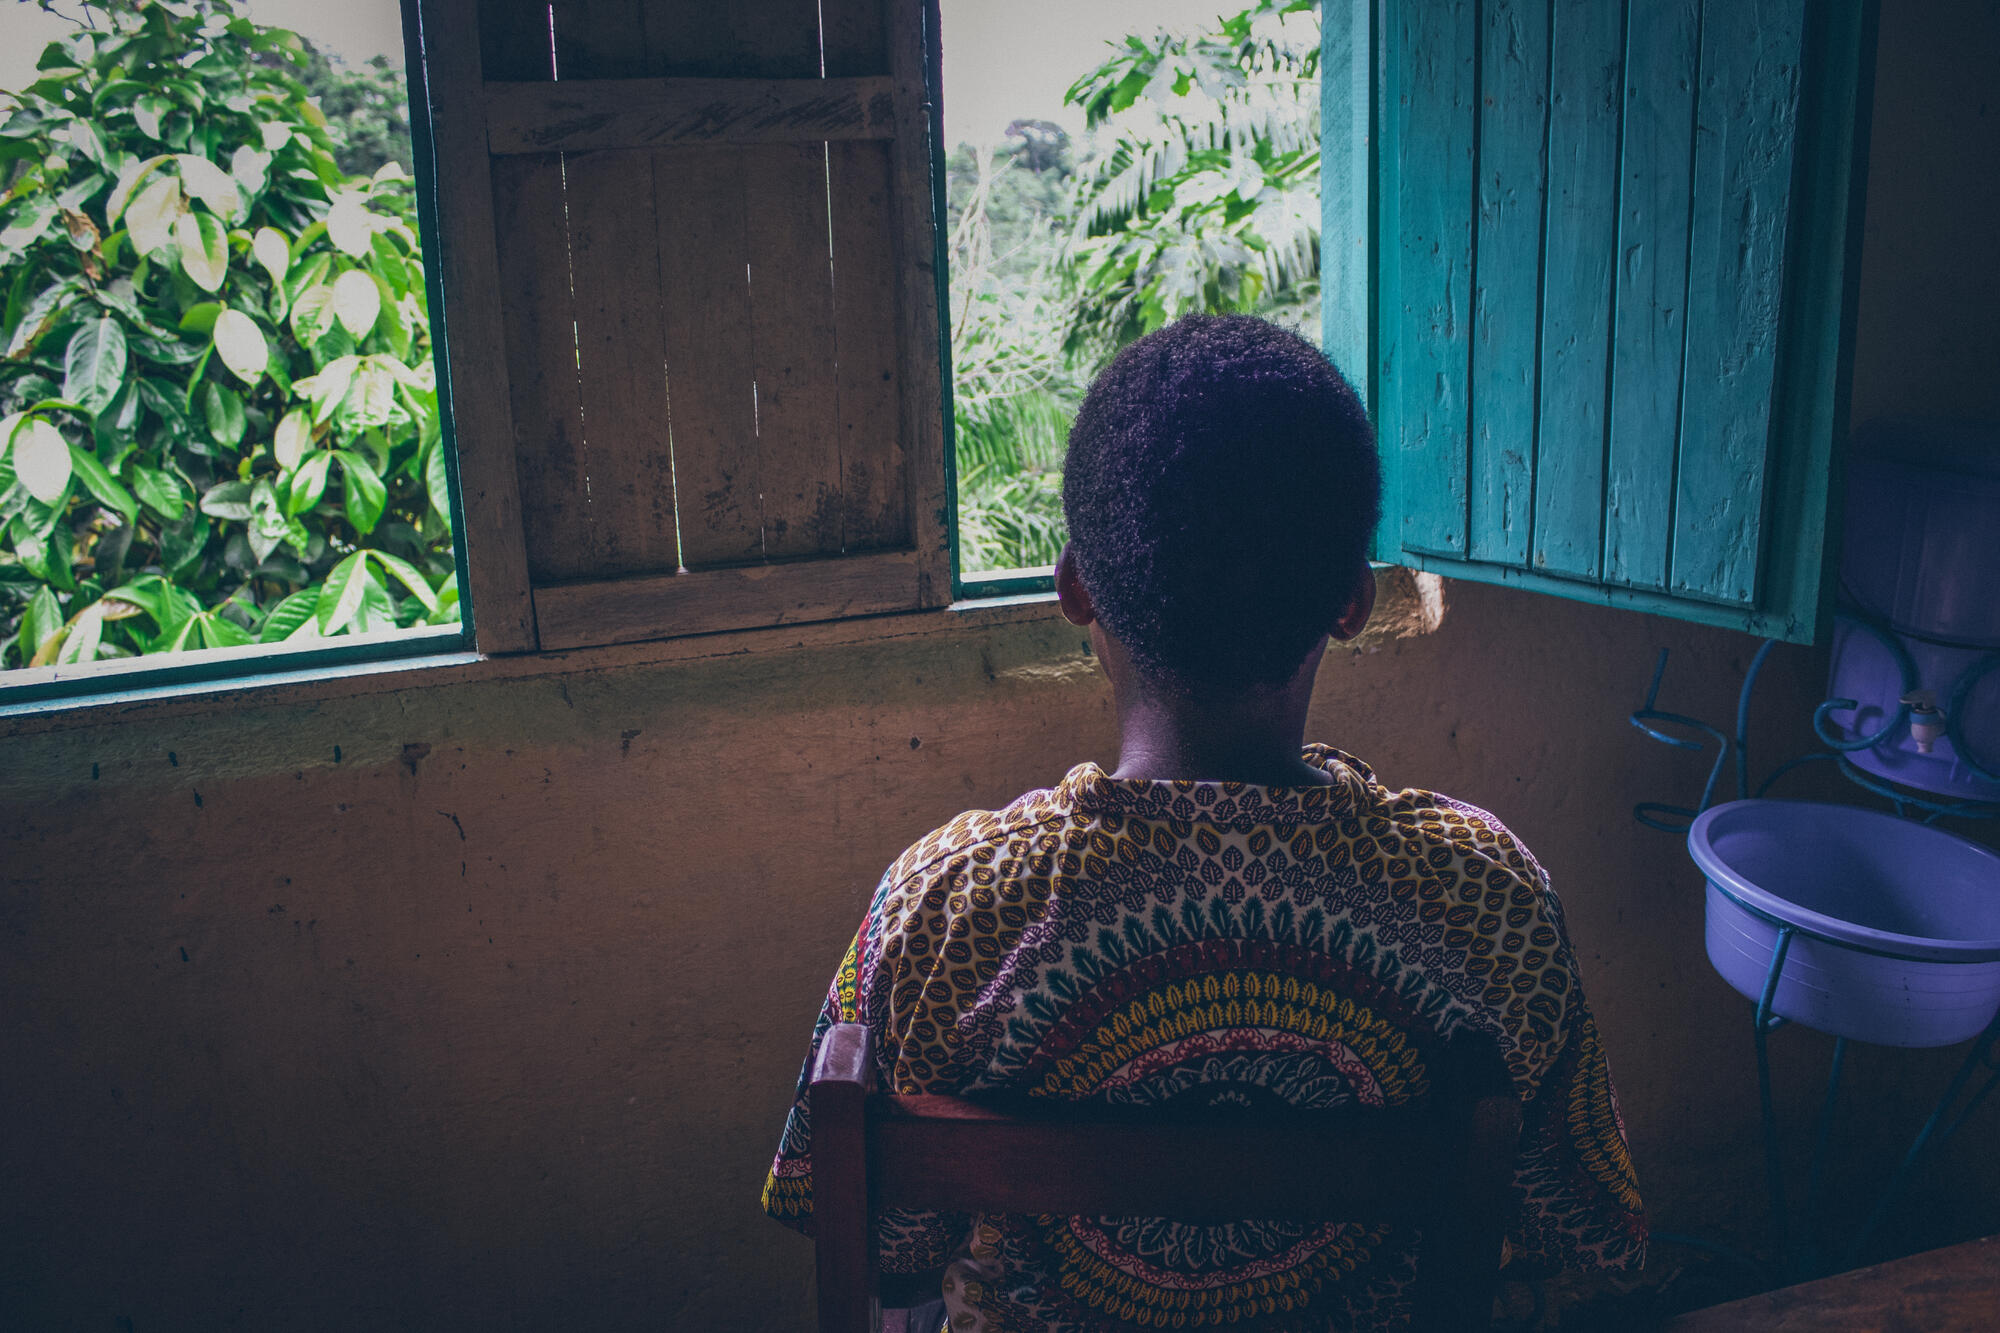 An 18-year-old patient who came to an MSF-supported hospital in Kigulube, DRC, for safe abortion care